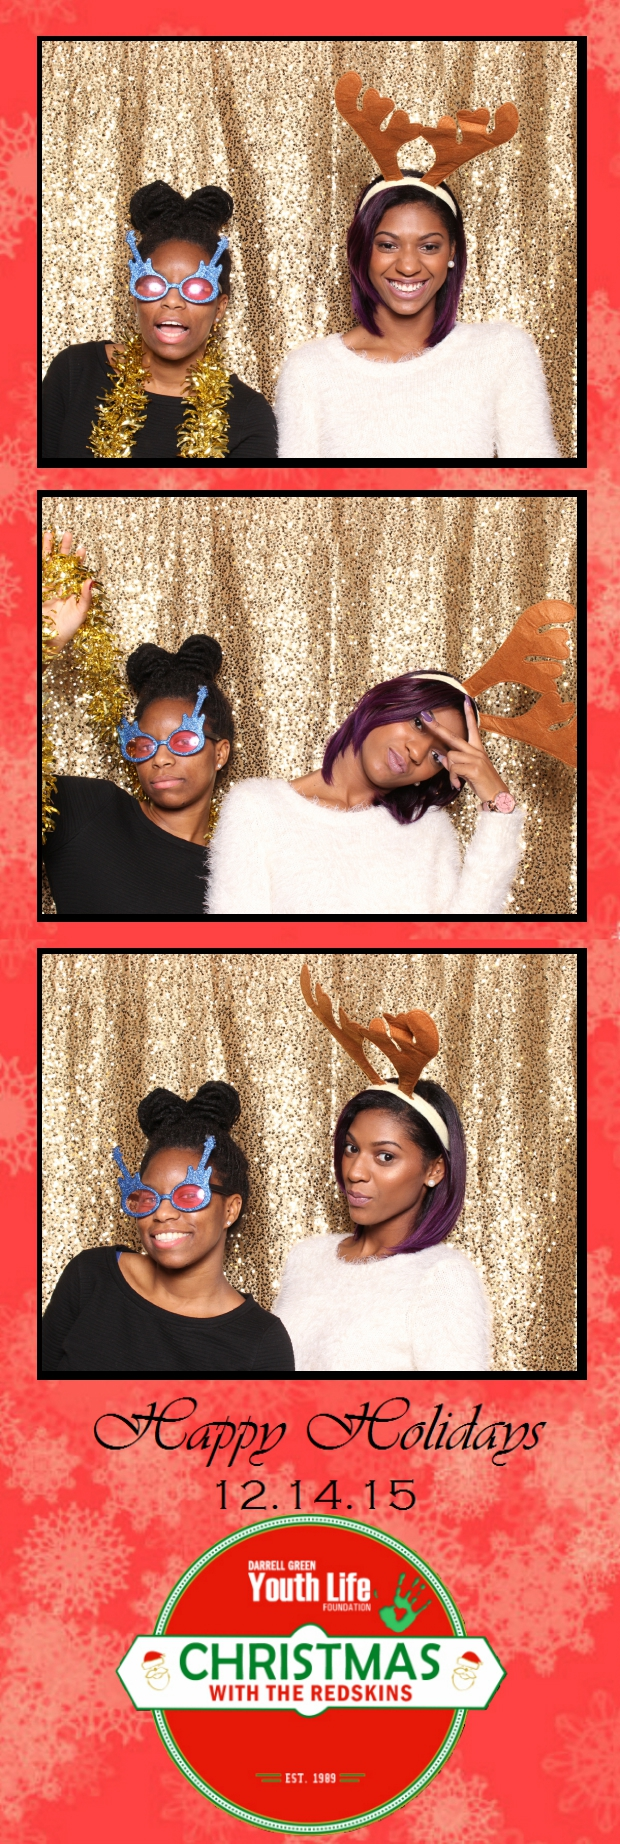 Guest House Events Photo Booth DGYLF Strips (2).jpg